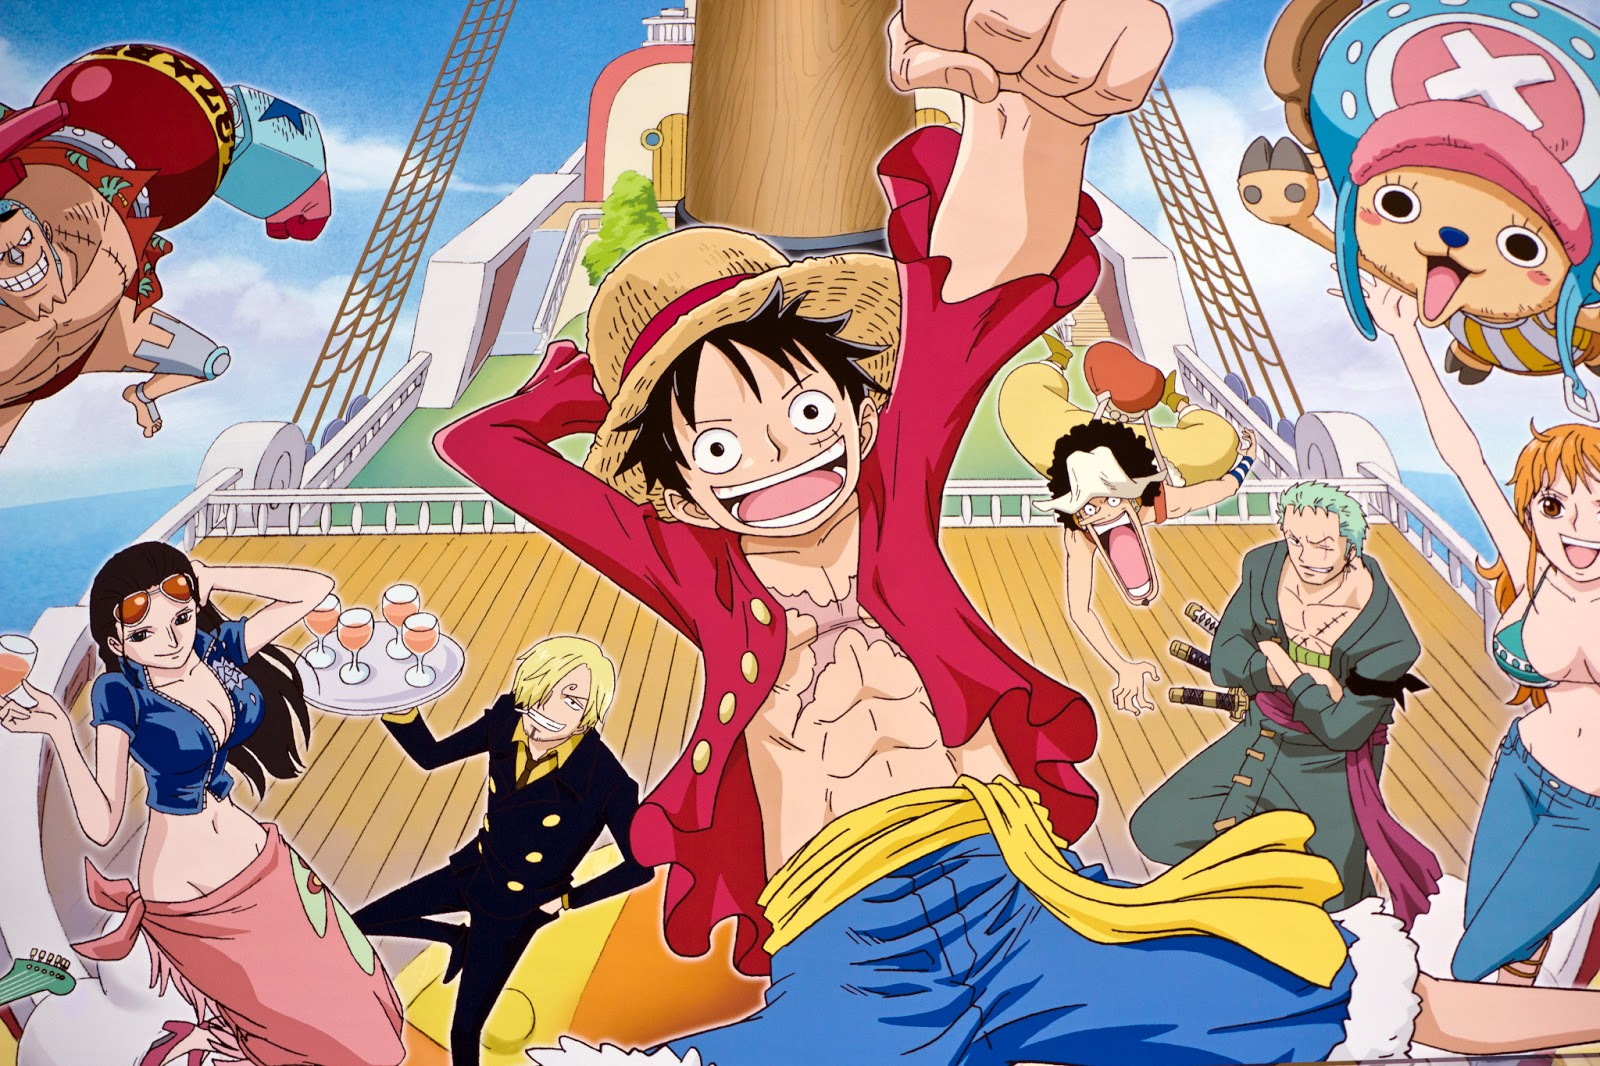 one piece wallpaper backgrounds   Cool Anime Wallpaper Backgrounds 1600x1066